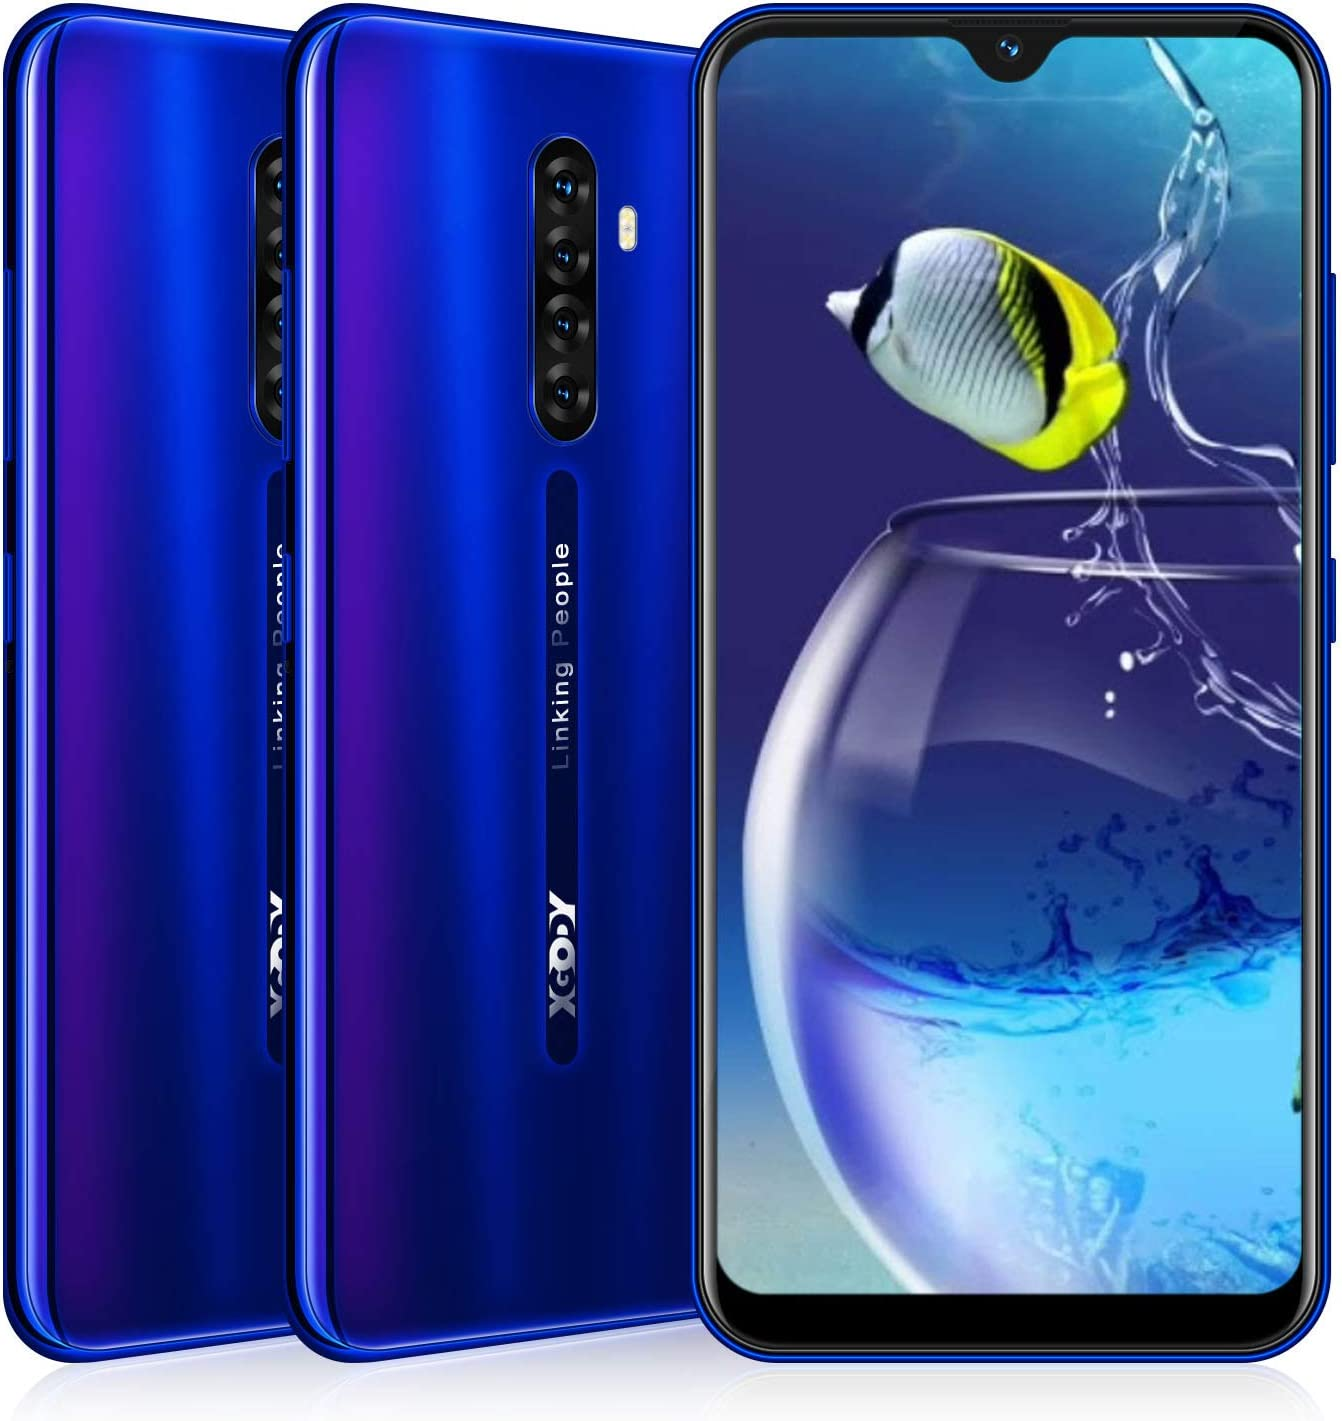 6.3inch LTE 4G Unlocked Phone Note 8 Xgody Unlocked Cell Phone 16GB+2GB Android 9.0 Smartphone Global Version